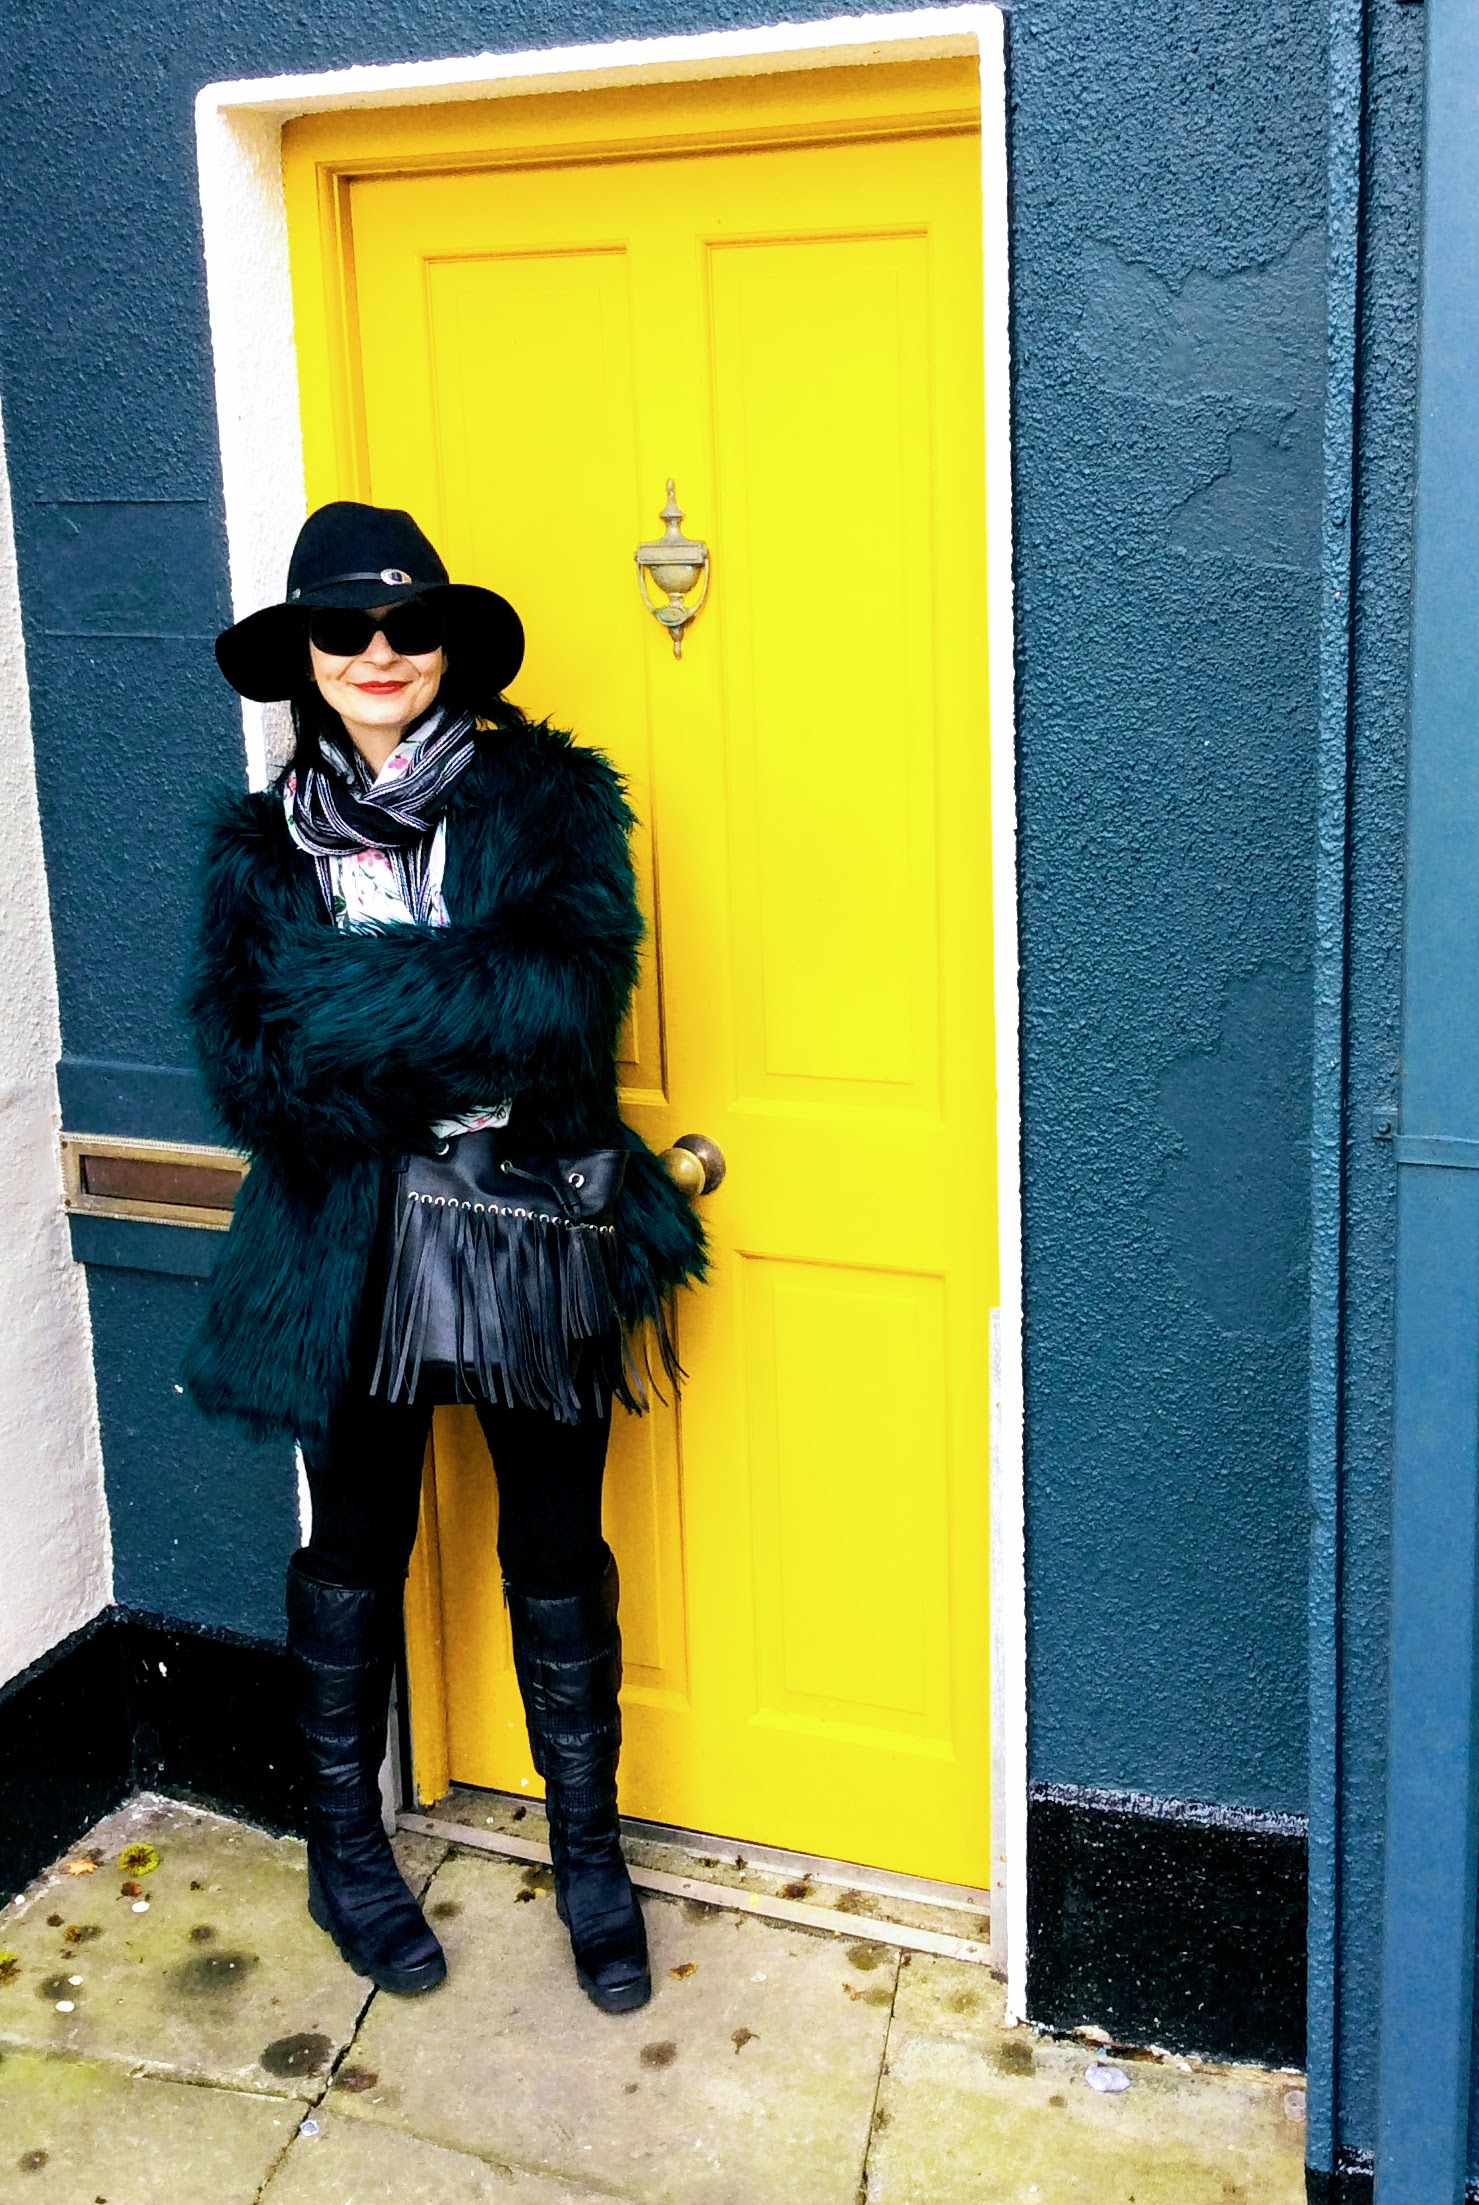 This high street faux fur coat look worn with a hat from Penneys/Primark